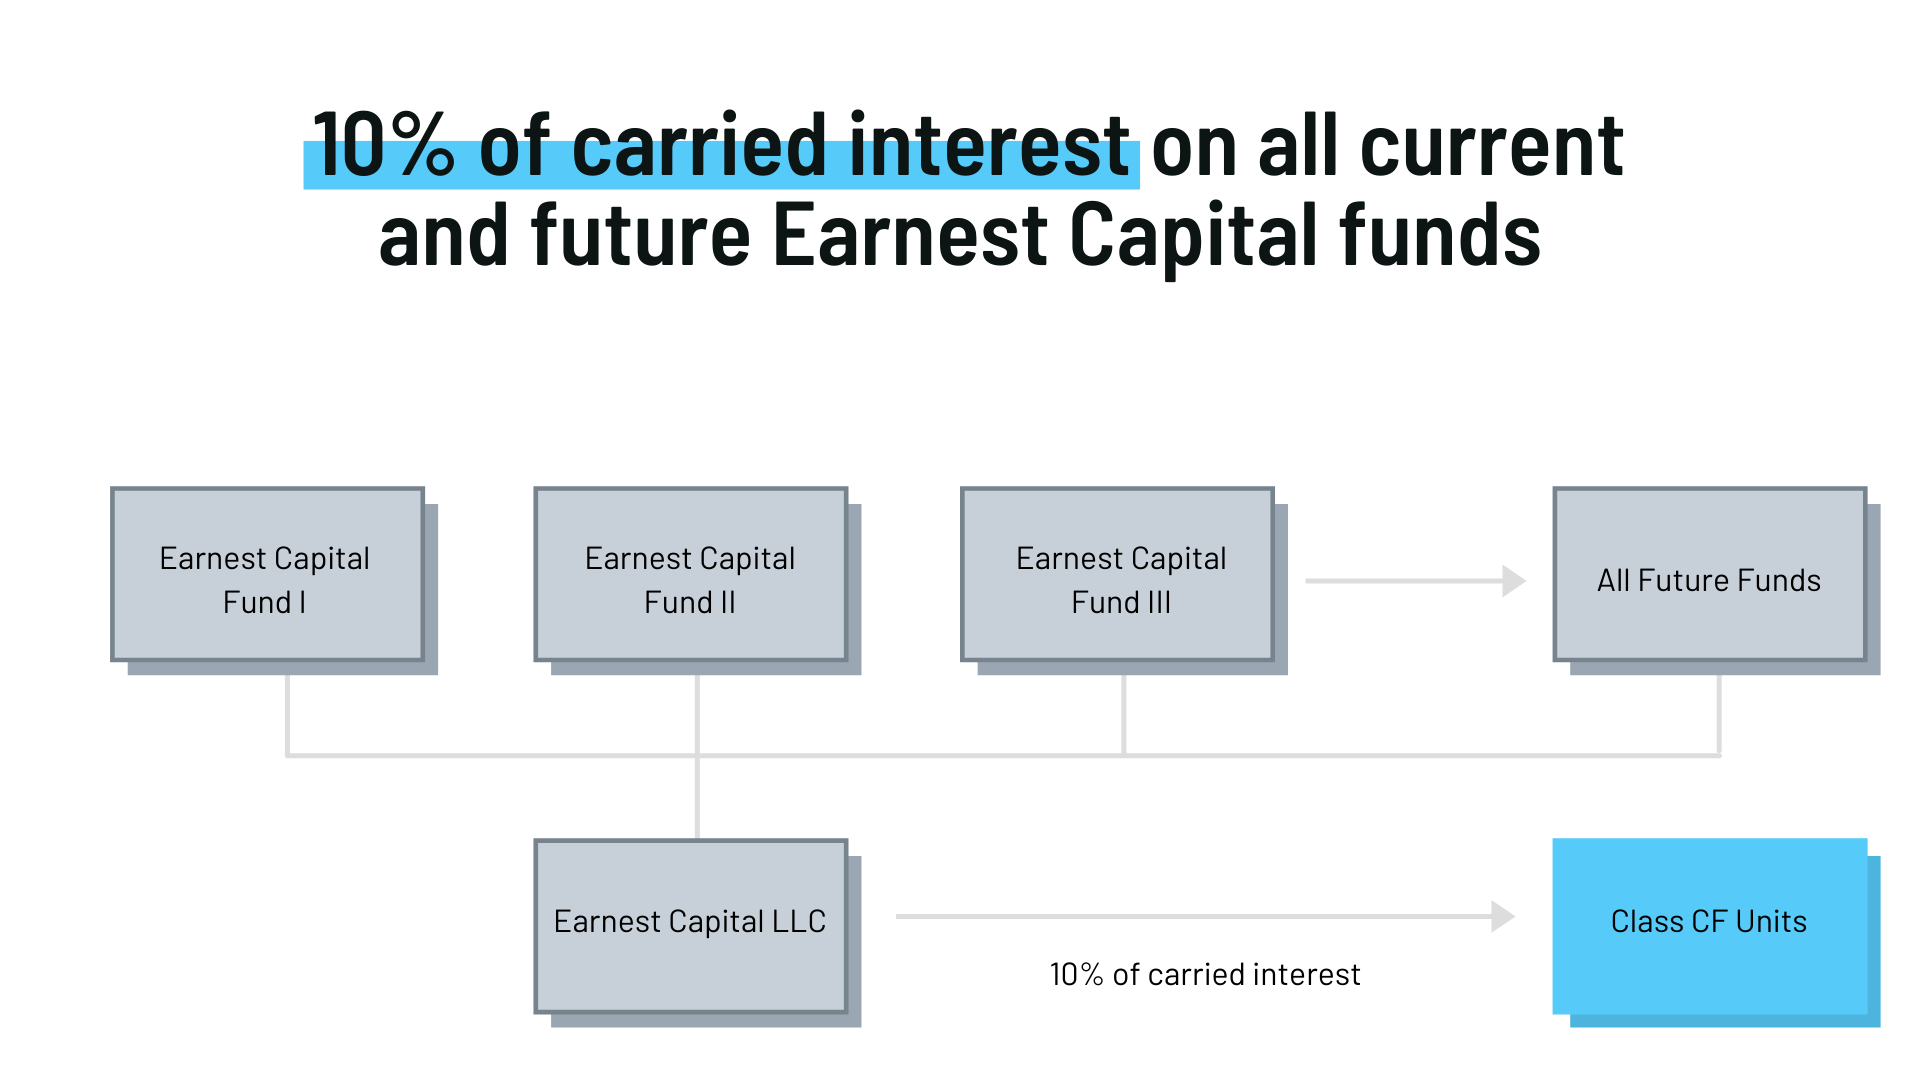 10% of carried interest on all current and future Earnest Capital funds